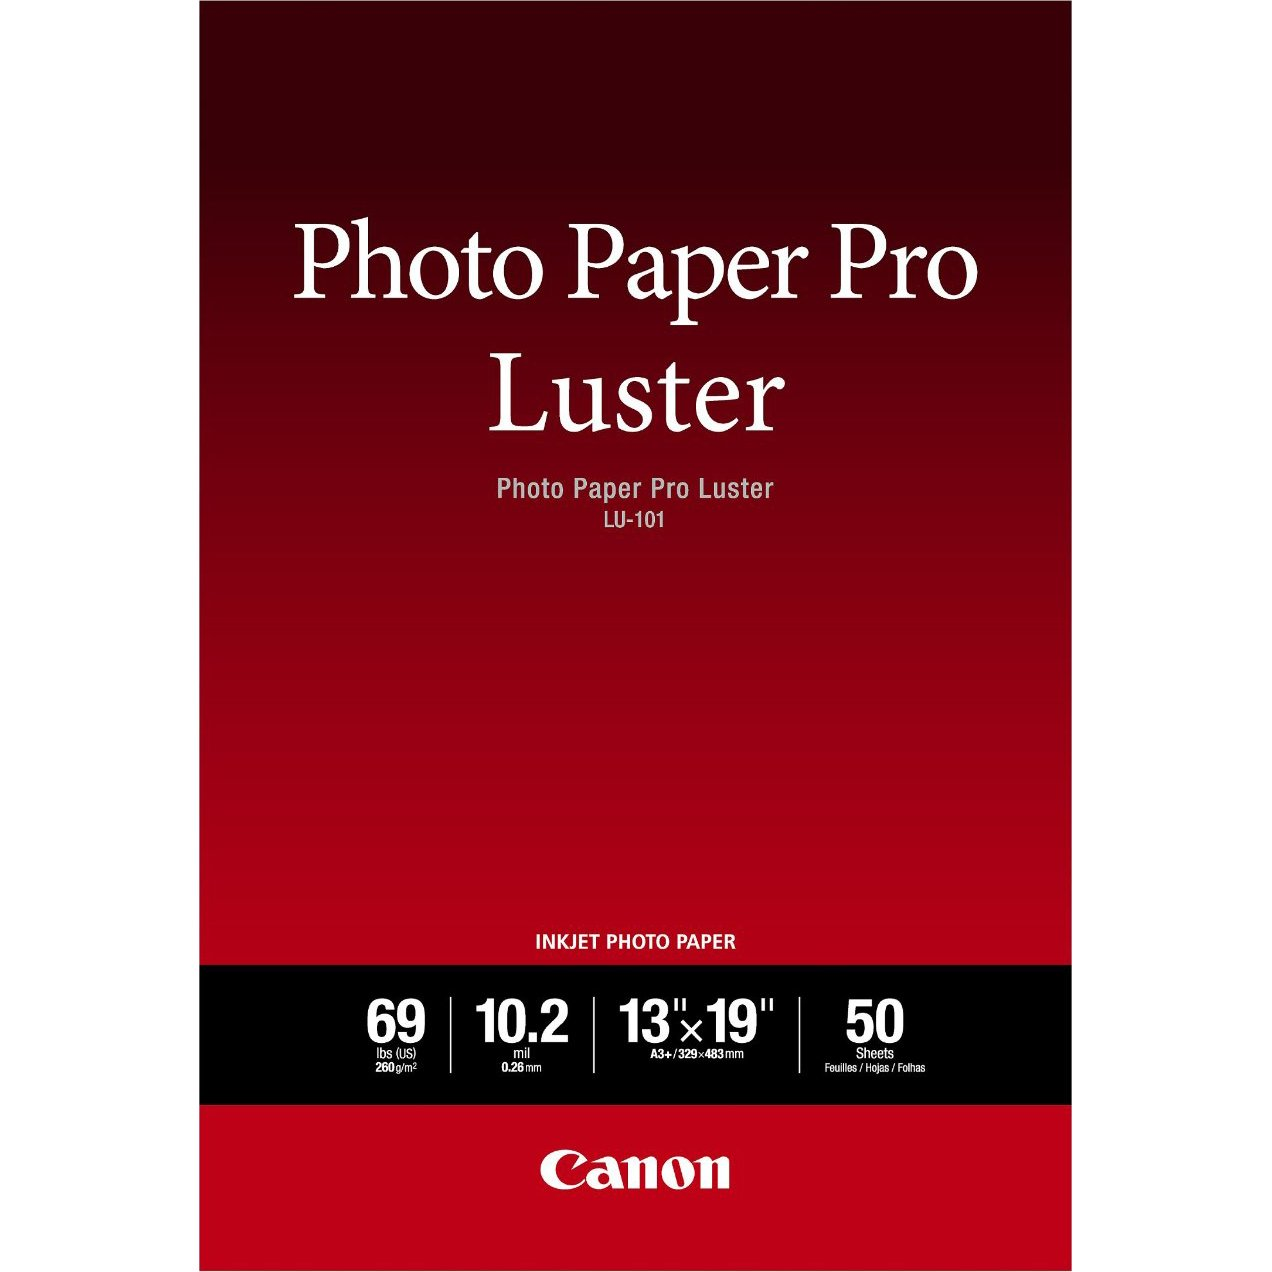 Canon Pro Luster Inkjet Photo Paper, 8.5-Inch X 11-Inch, White, 50 Sheets/Pack CANON USA INC. CNM6211B004